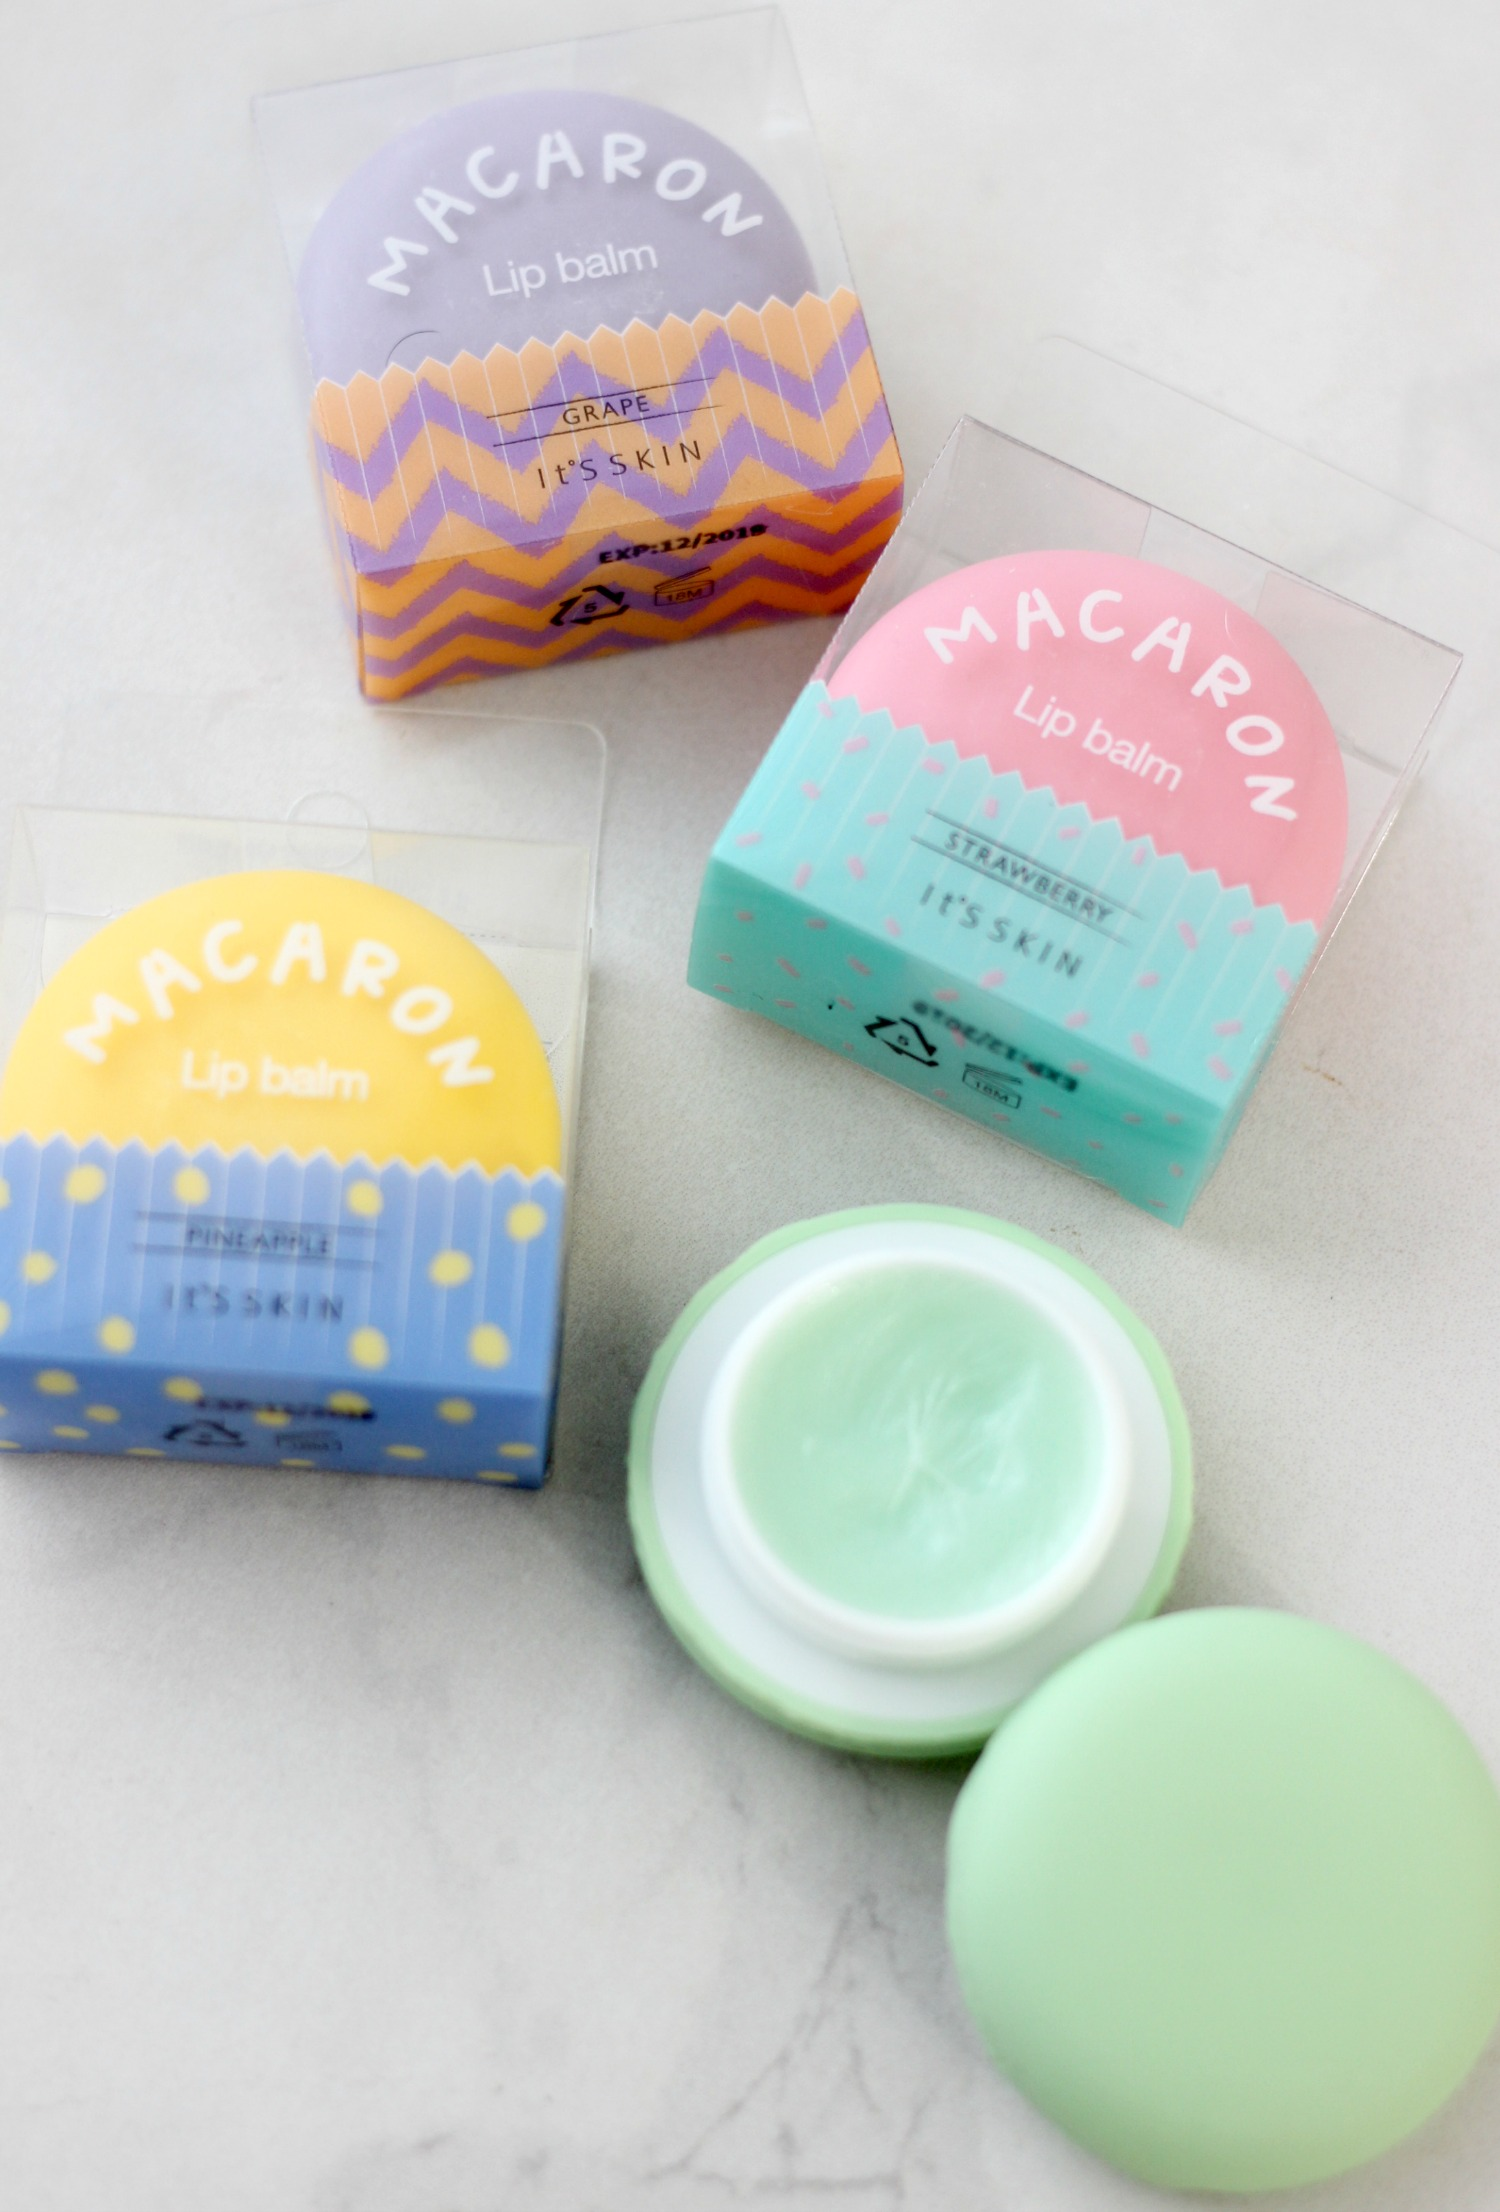 It's Skin Macaron Lip Balms Review